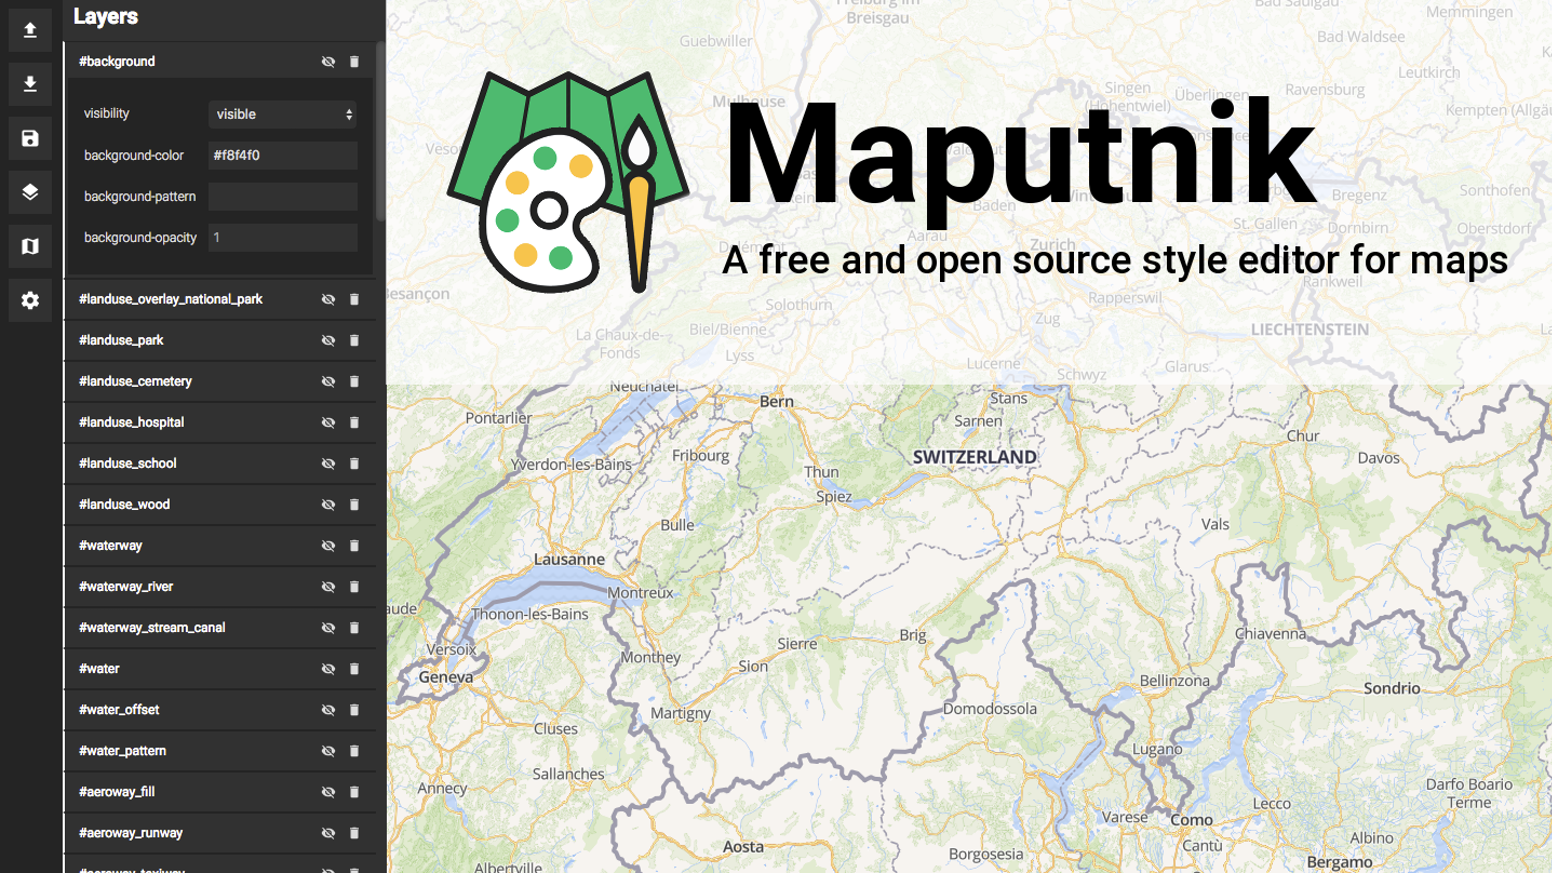 Maputnik visual map editor for mapbox gl by lukas martinelli a free and open source visual editor for mapbox gl so everyone can design their own gumiabroncs Image collections